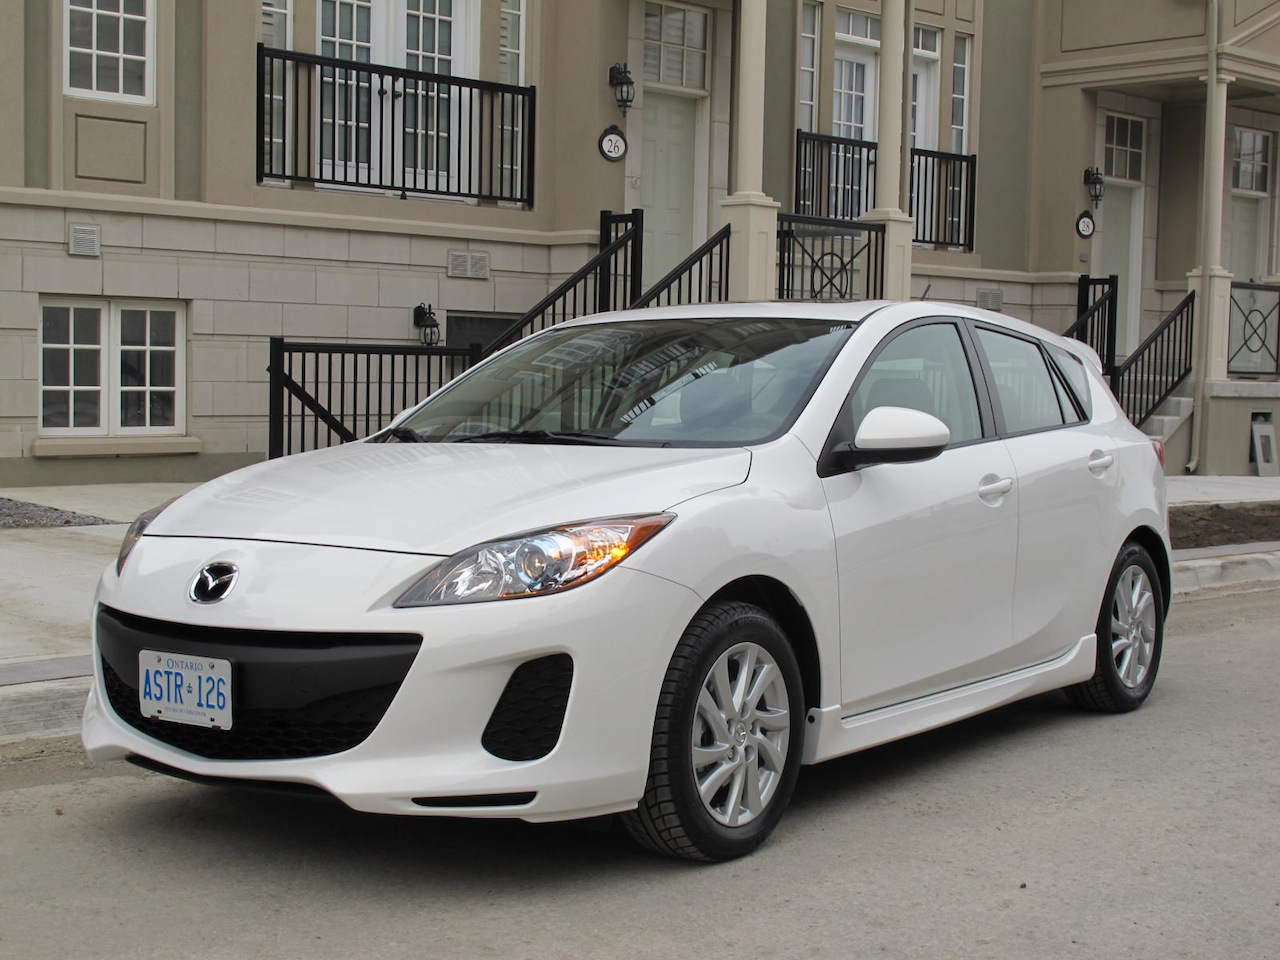 2012 mazda3 gs review cars photos test drives and reviews canadian auto review. Black Bedroom Furniture Sets. Home Design Ideas